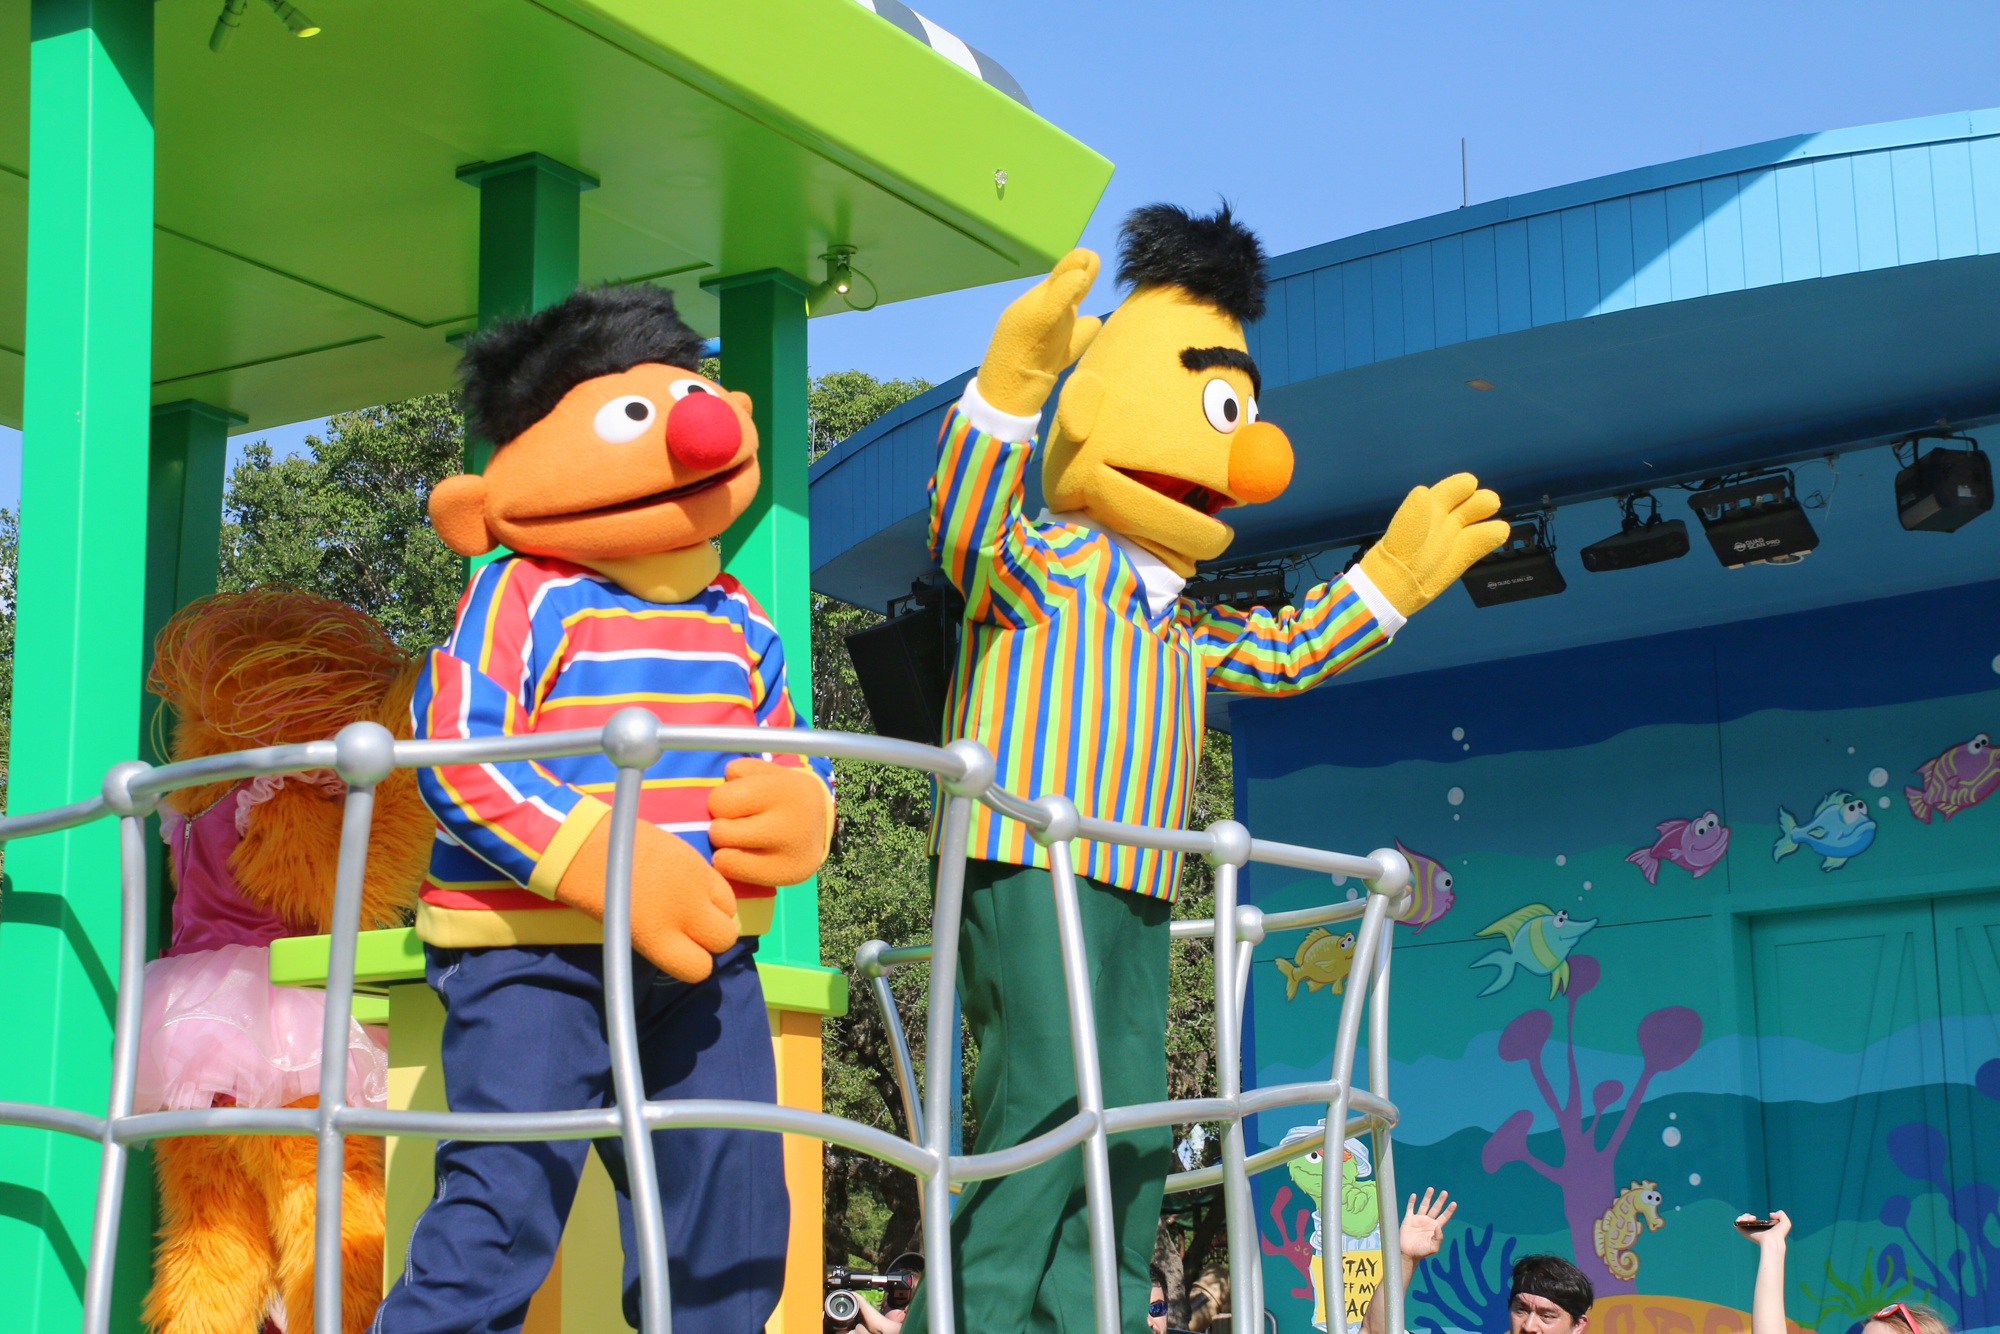 Bert and Ernie on Sesame Street parade float